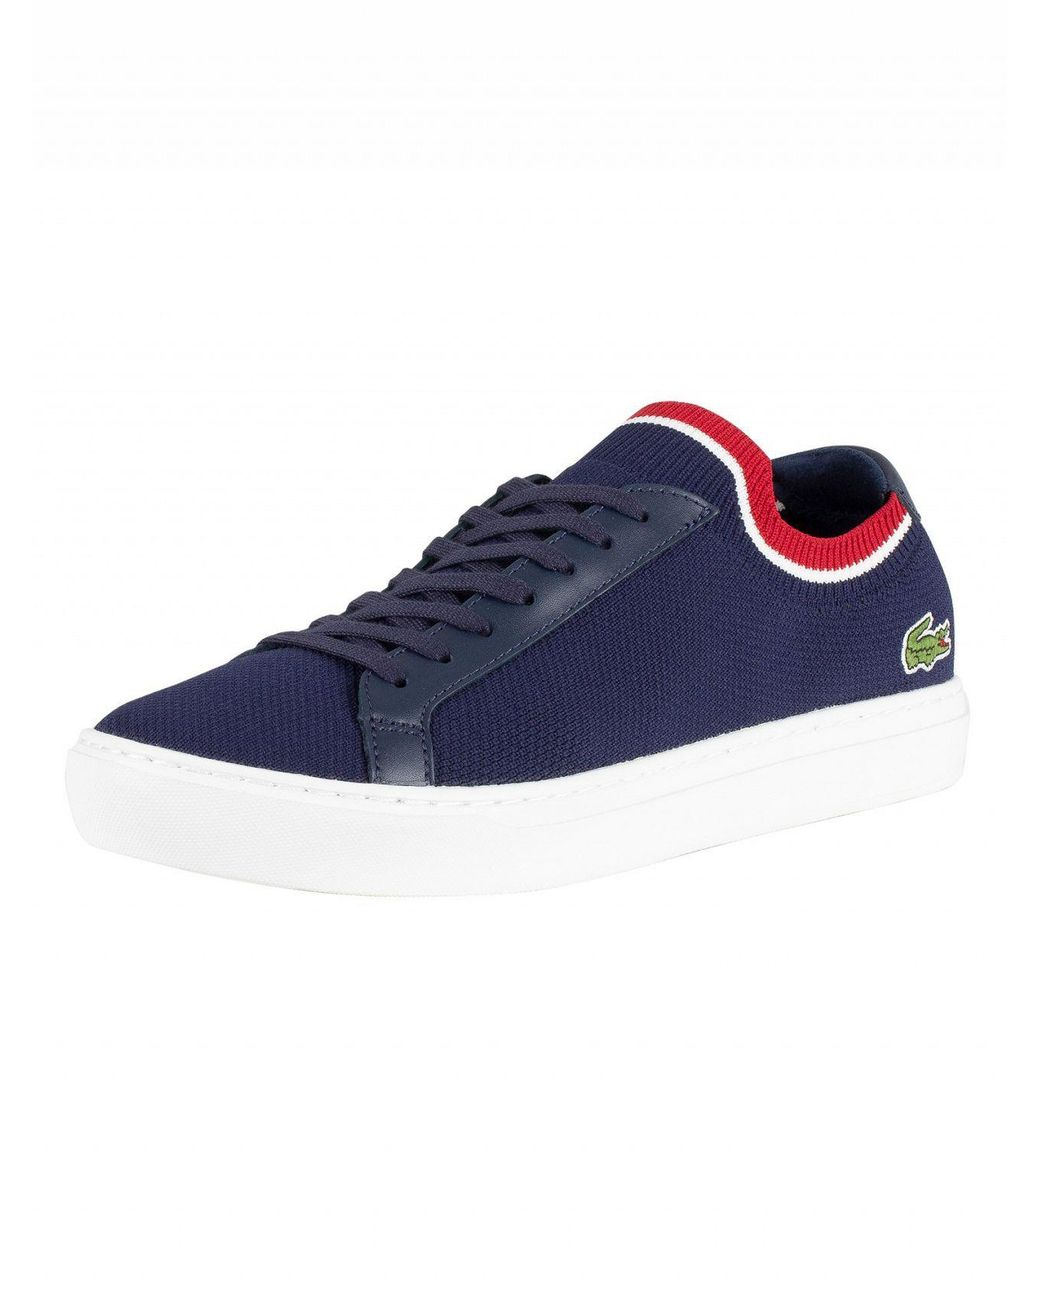 c6fdb5a8fd Lacoste Navy white red La Piquee 119 1 Cma Trainers in Blue for Men ...